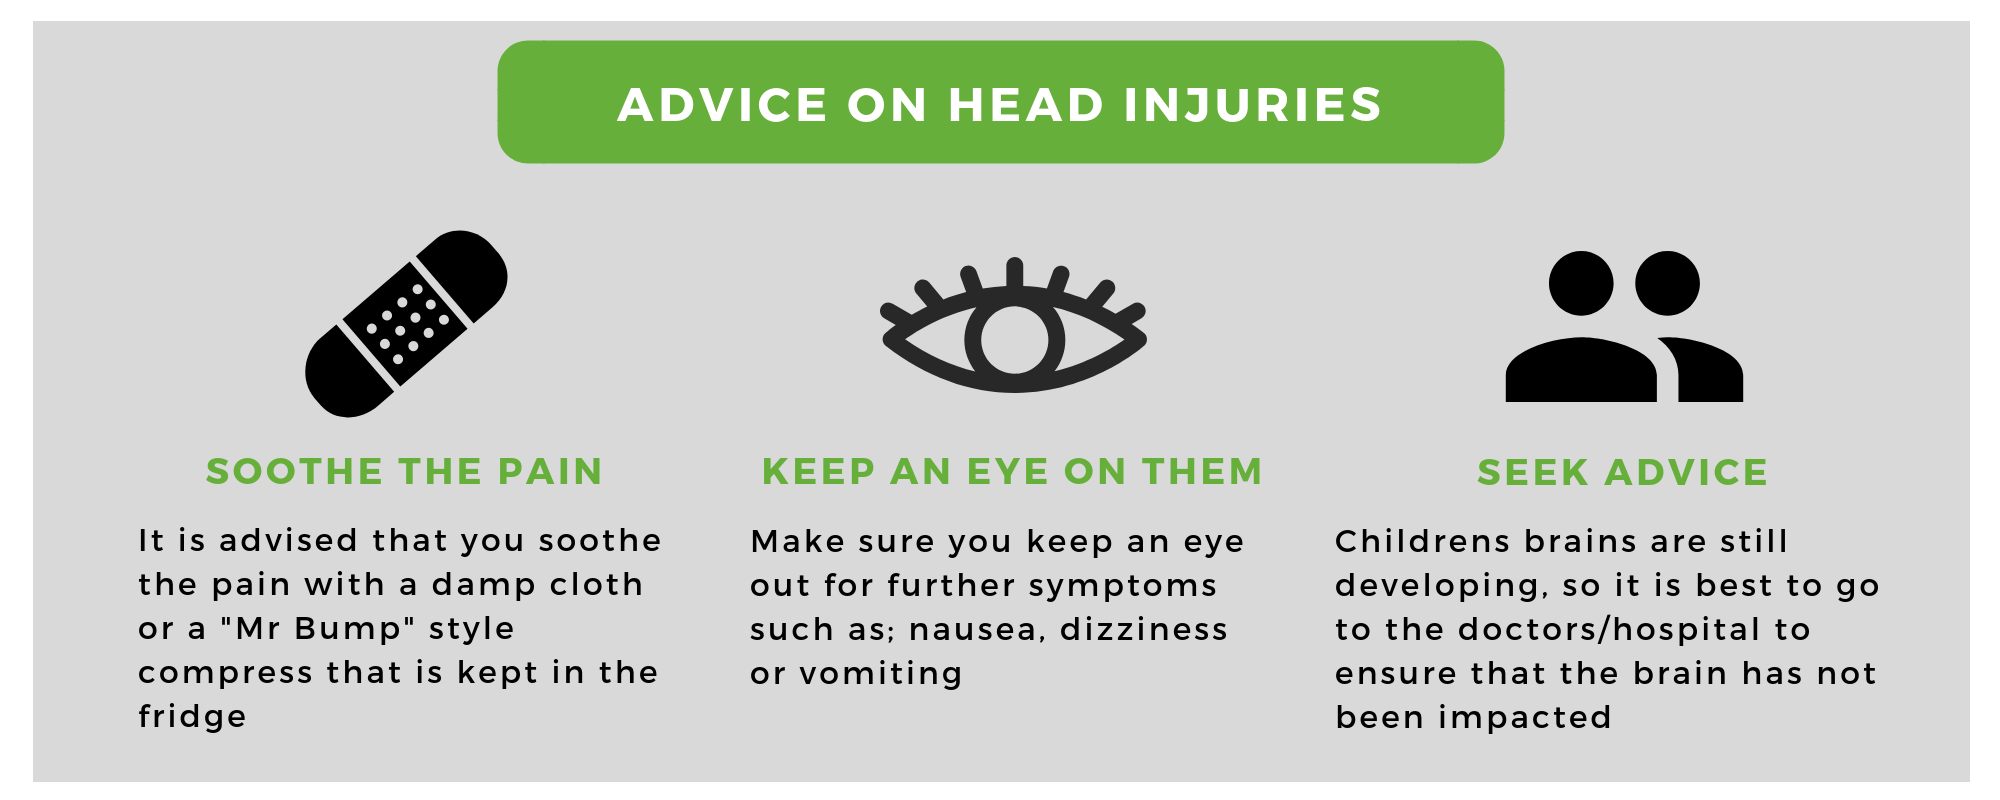 Our advice on treating a baby or child with a suspected head